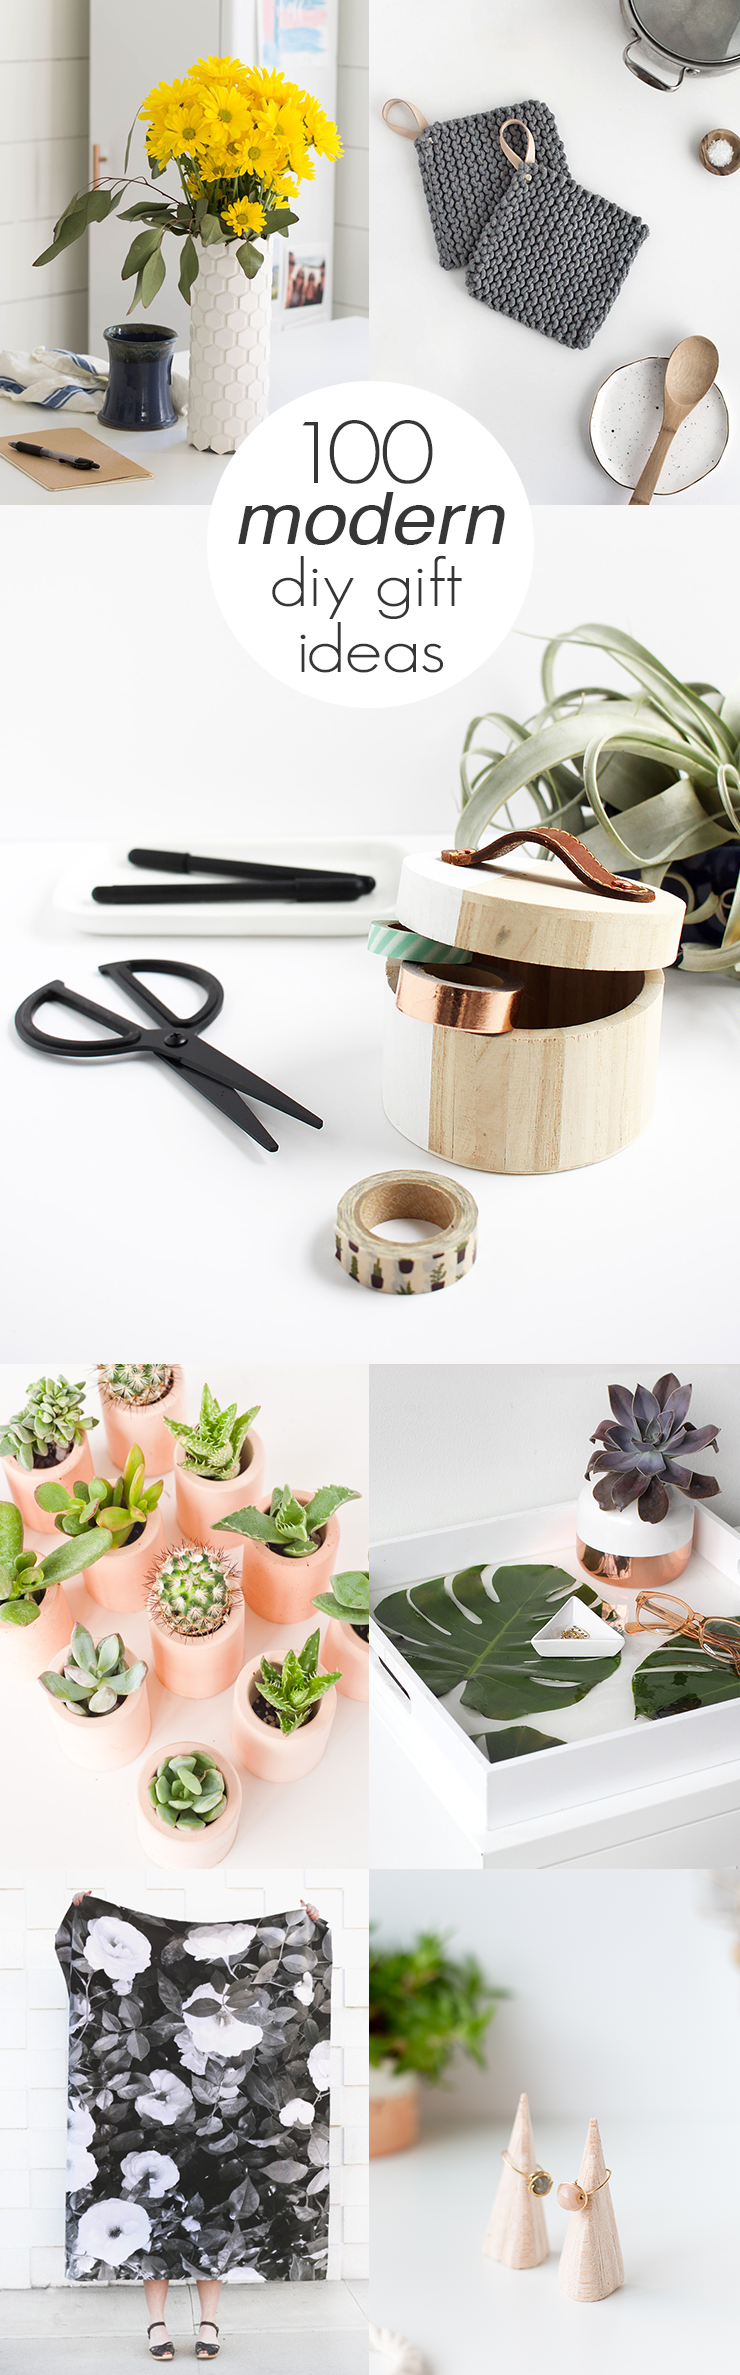 100 Modern Diy Gift Ideas Idle Hands Awake